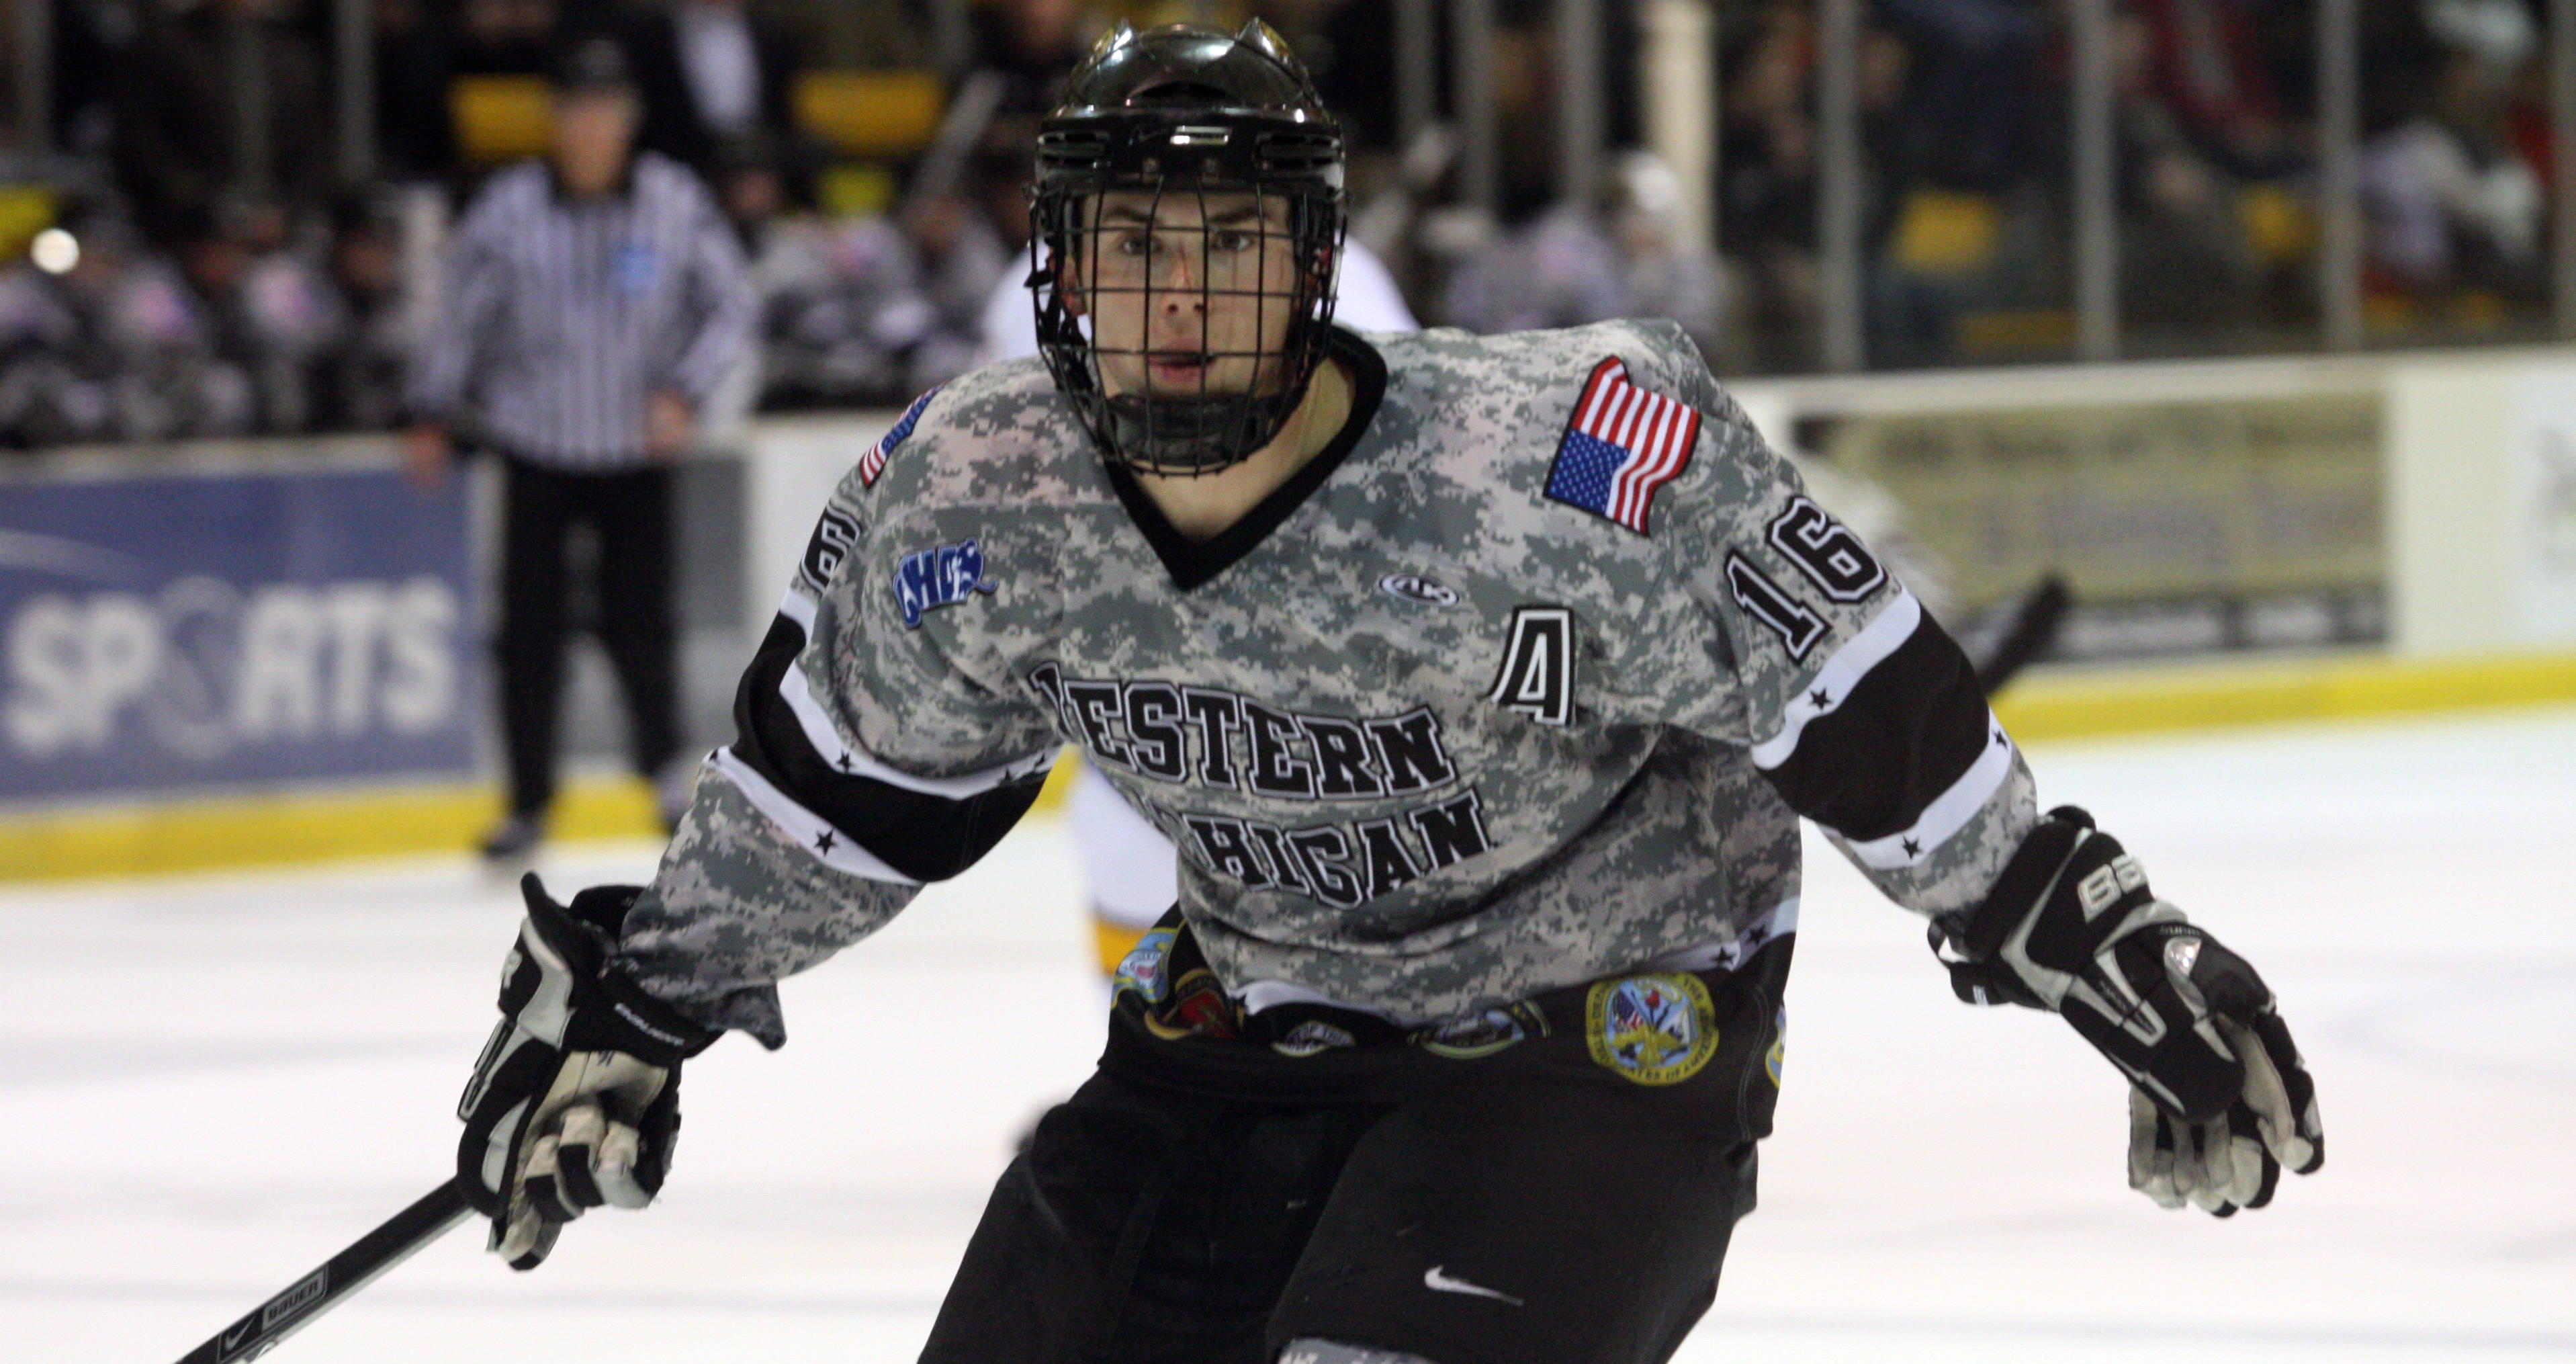 Bronco Hockey Holds Military Appreciation Night Saturday - Western ... c0954d8dc2a